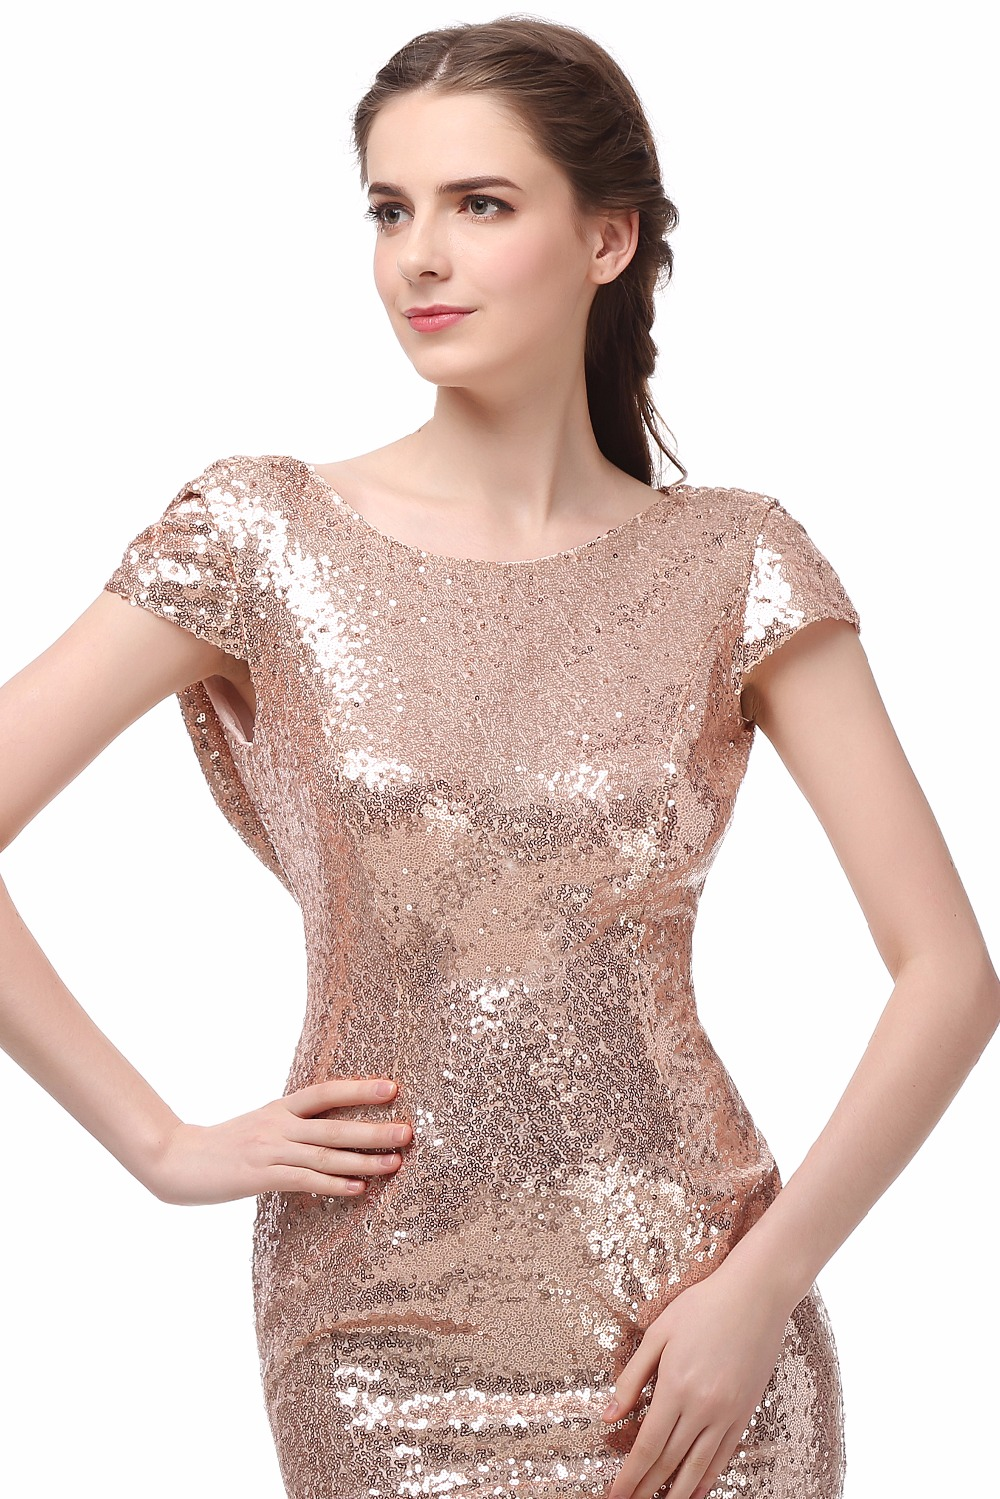 Champagne gold sequin bridesmaid dresses 2016 hot long wedding champagne gold sequin bridesmaid dresses 2016 hot long wedding party dress vestidos de festa vestido longo in bridesmaid dresses from weddings events on ombrellifo Gallery